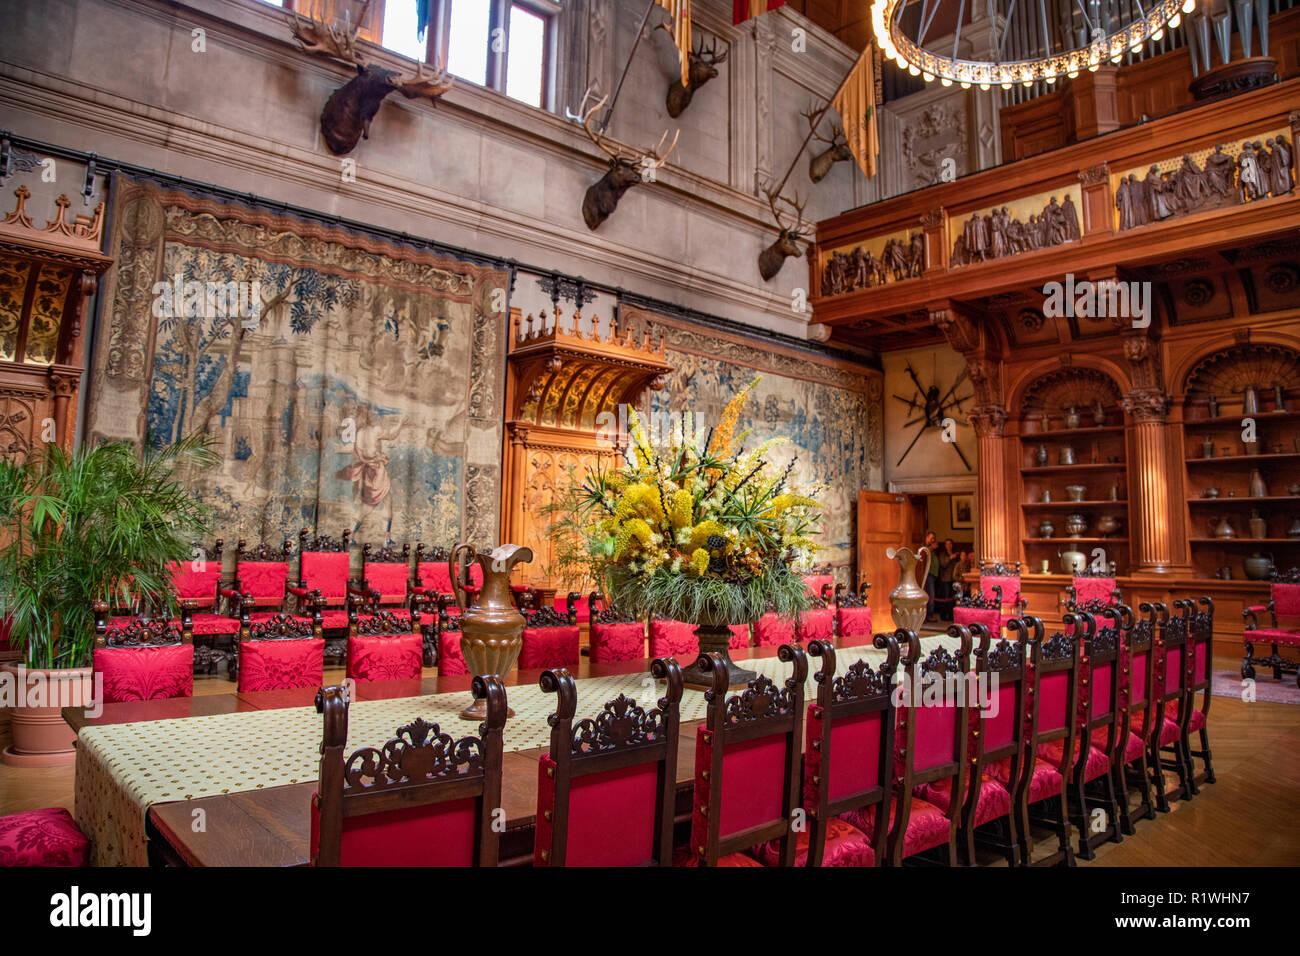 Interior Dining Room At Biltmore Estate Large Private Estate Built By George Vanderbilt Tourist Attraction In Asheville North Carolina Stock Photo Alamy